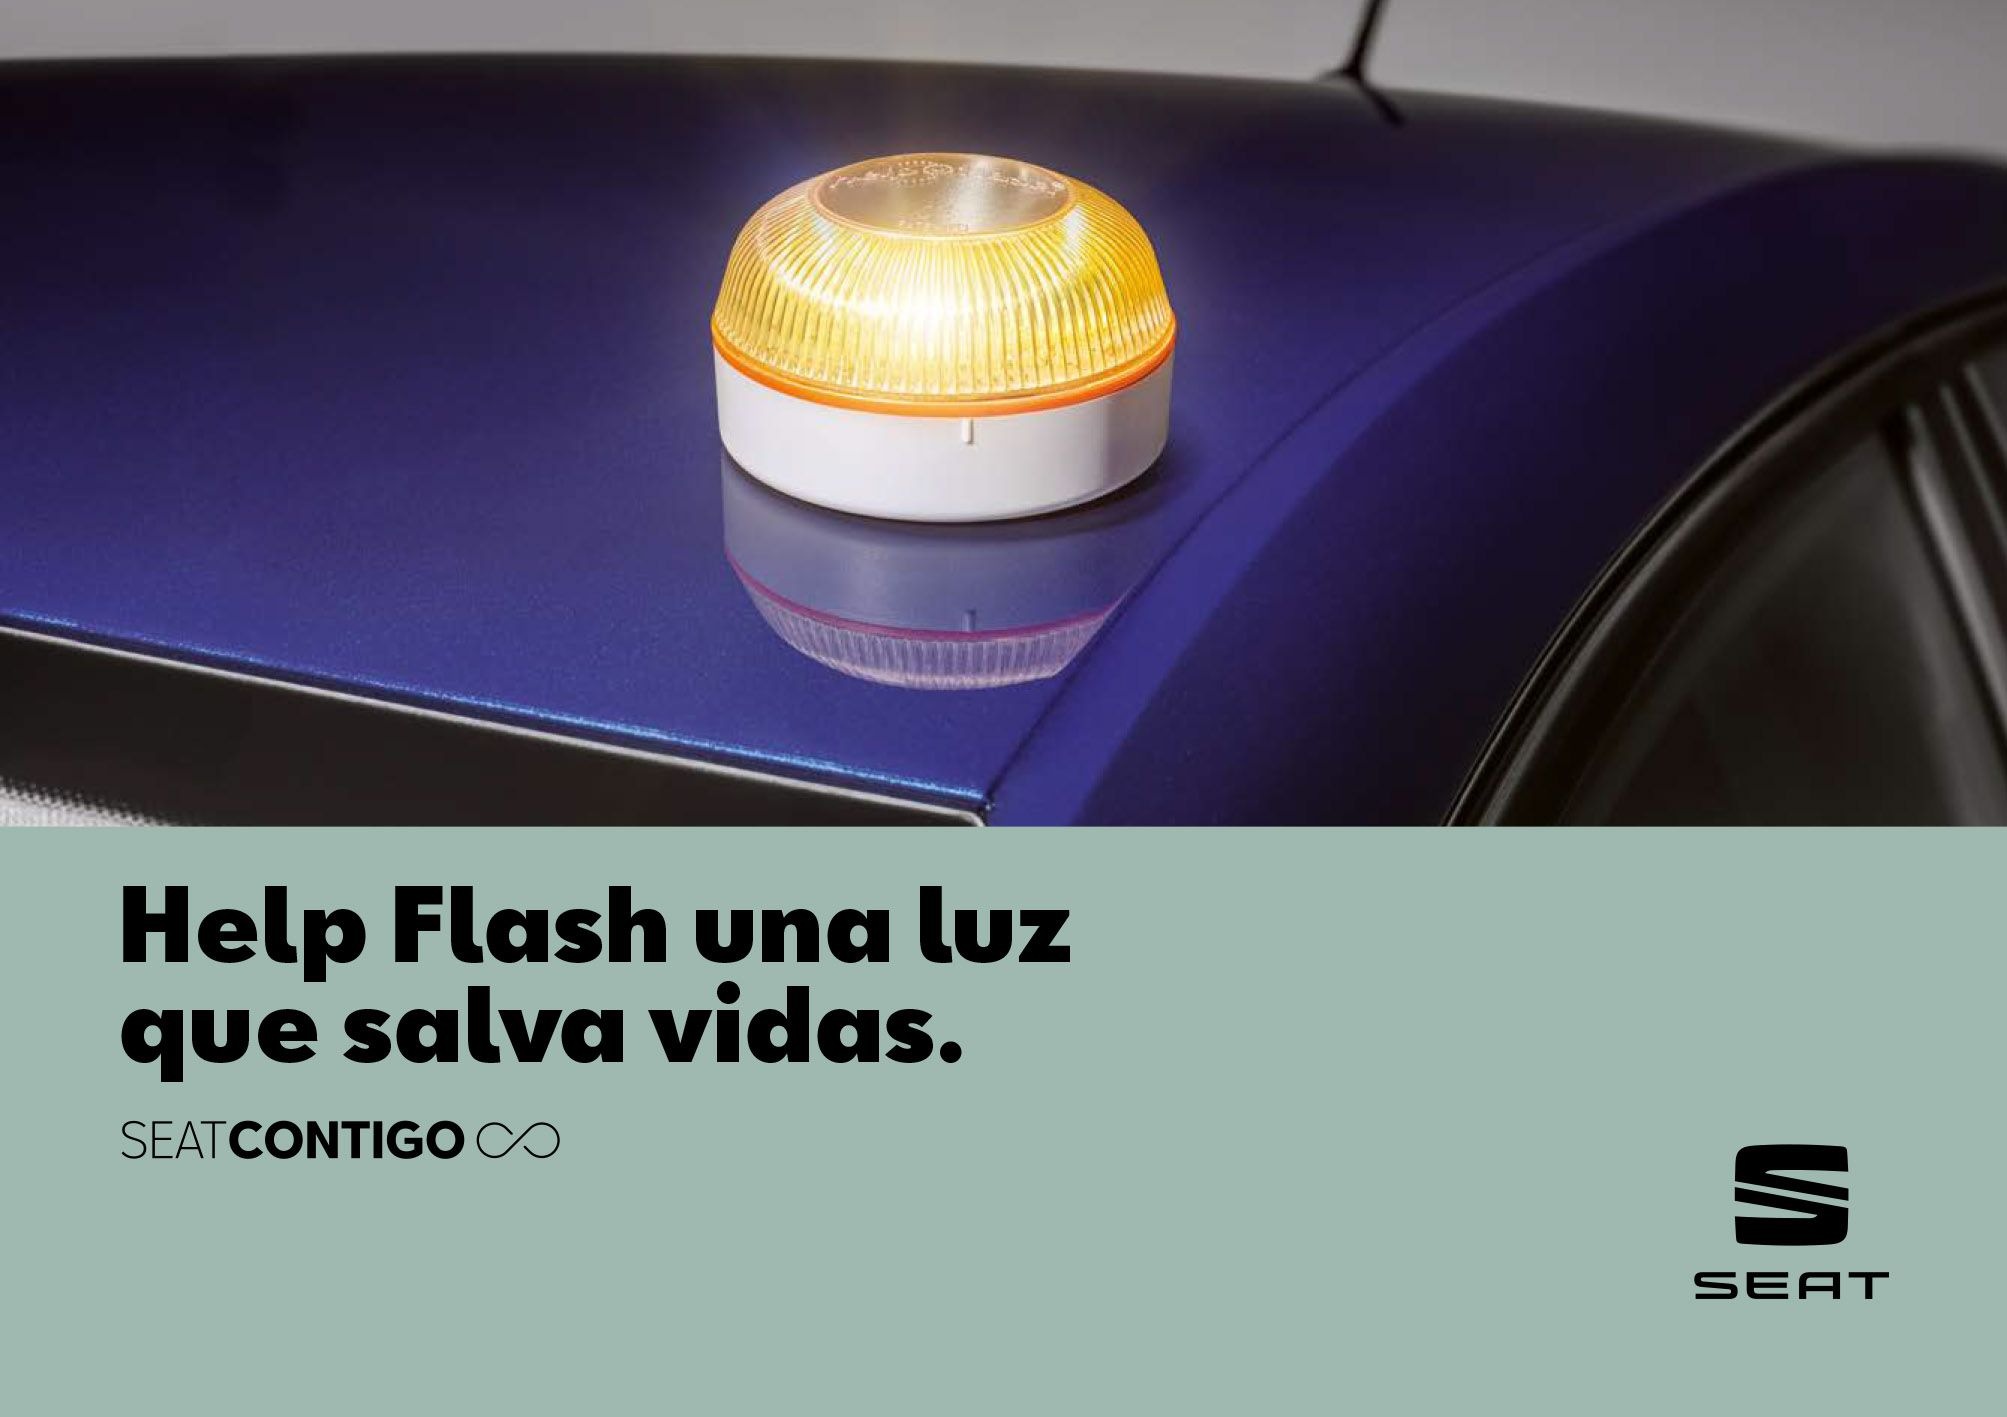 Help Flash, una luz que salva vidas